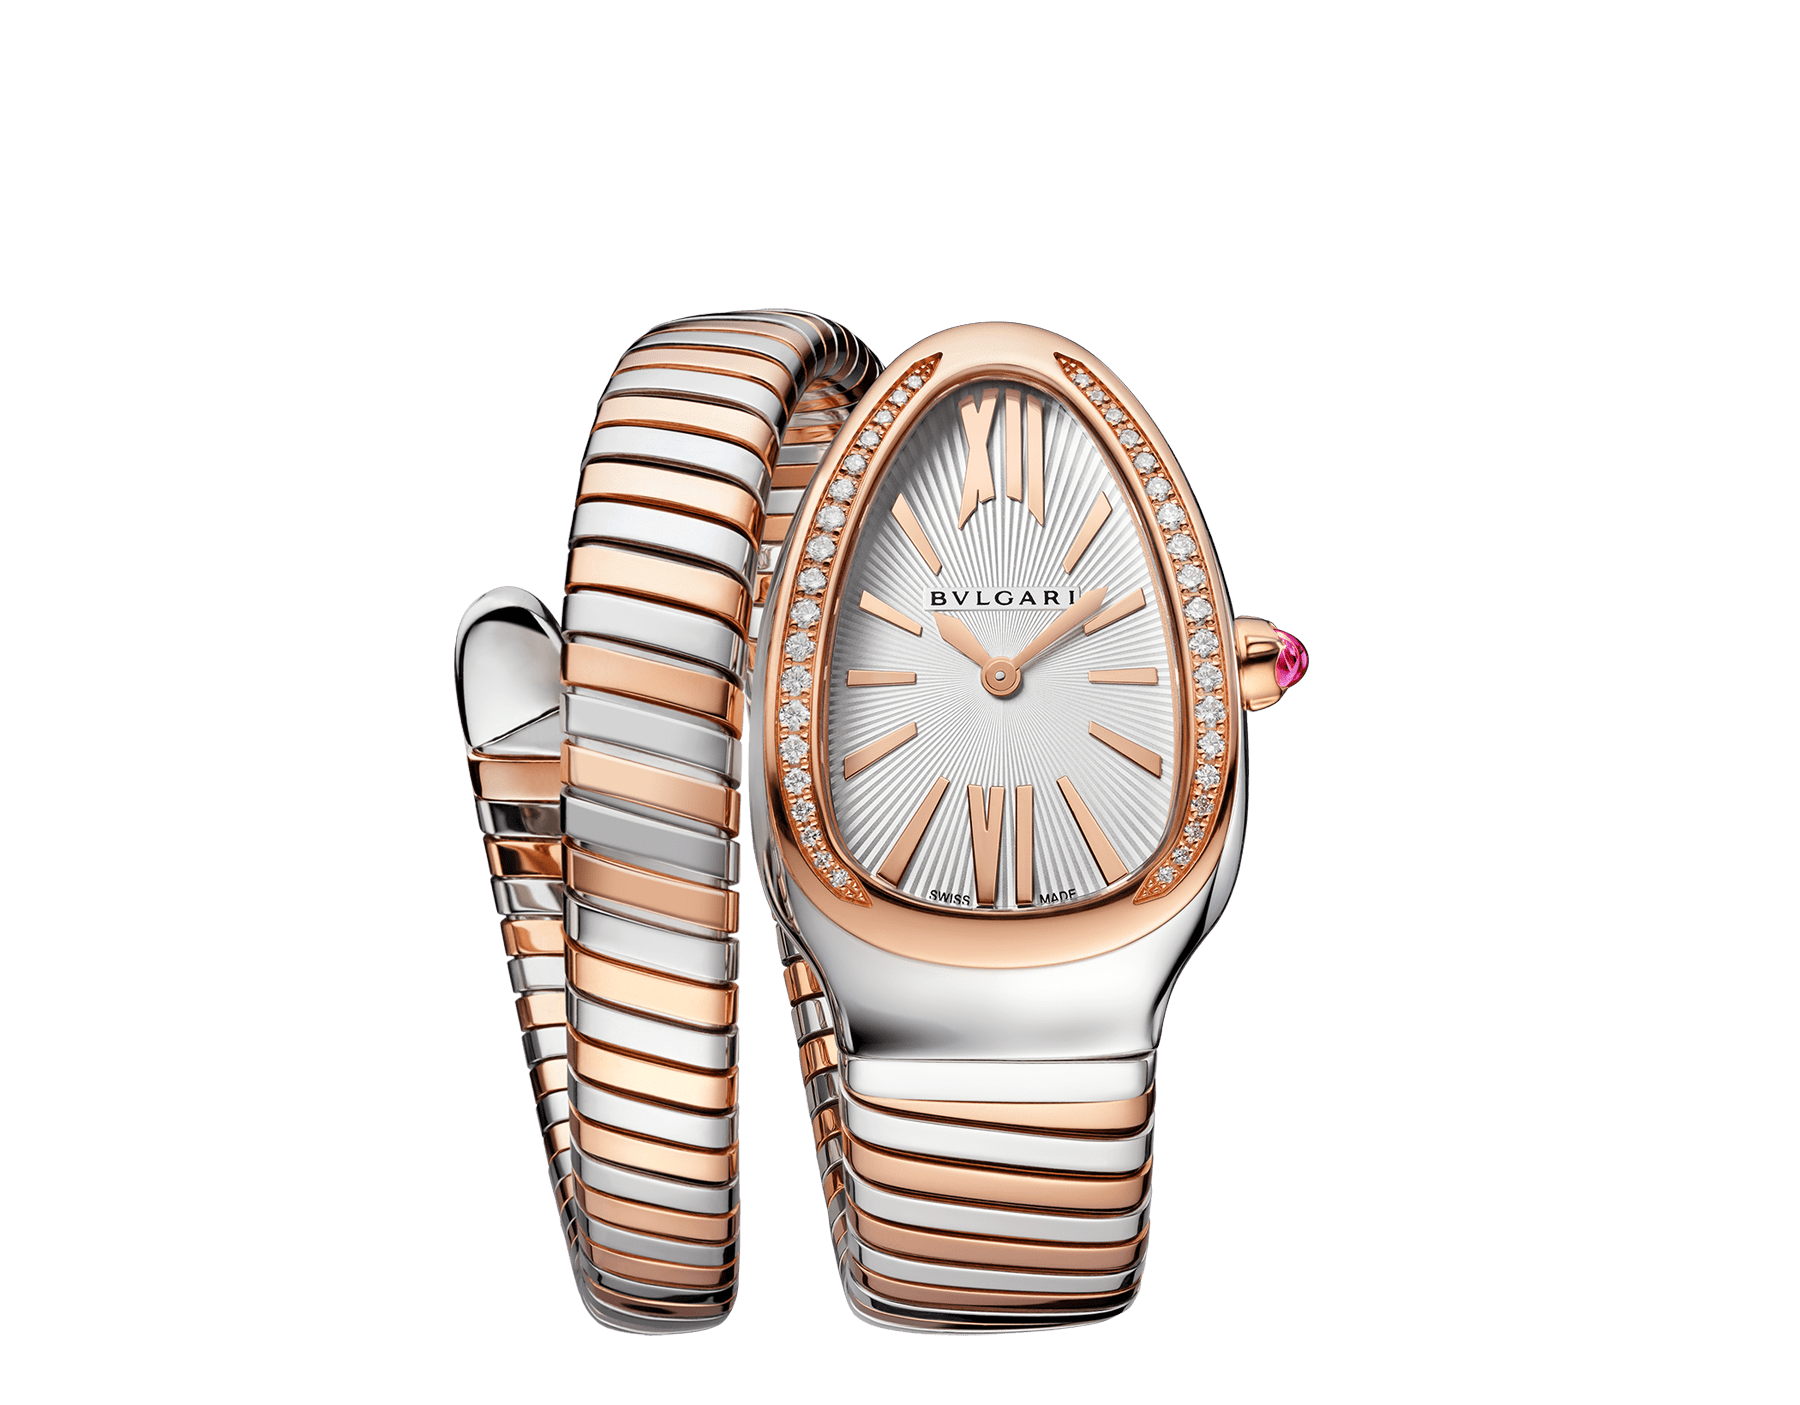 Serpenti Tubogas single spiral watch with stainless steel case, 18 kt rose gold bezel set with brilliant cut diamonds, silver opaline dial, 18 kt rose gold and stainless steel bracelet. 102237 image 1